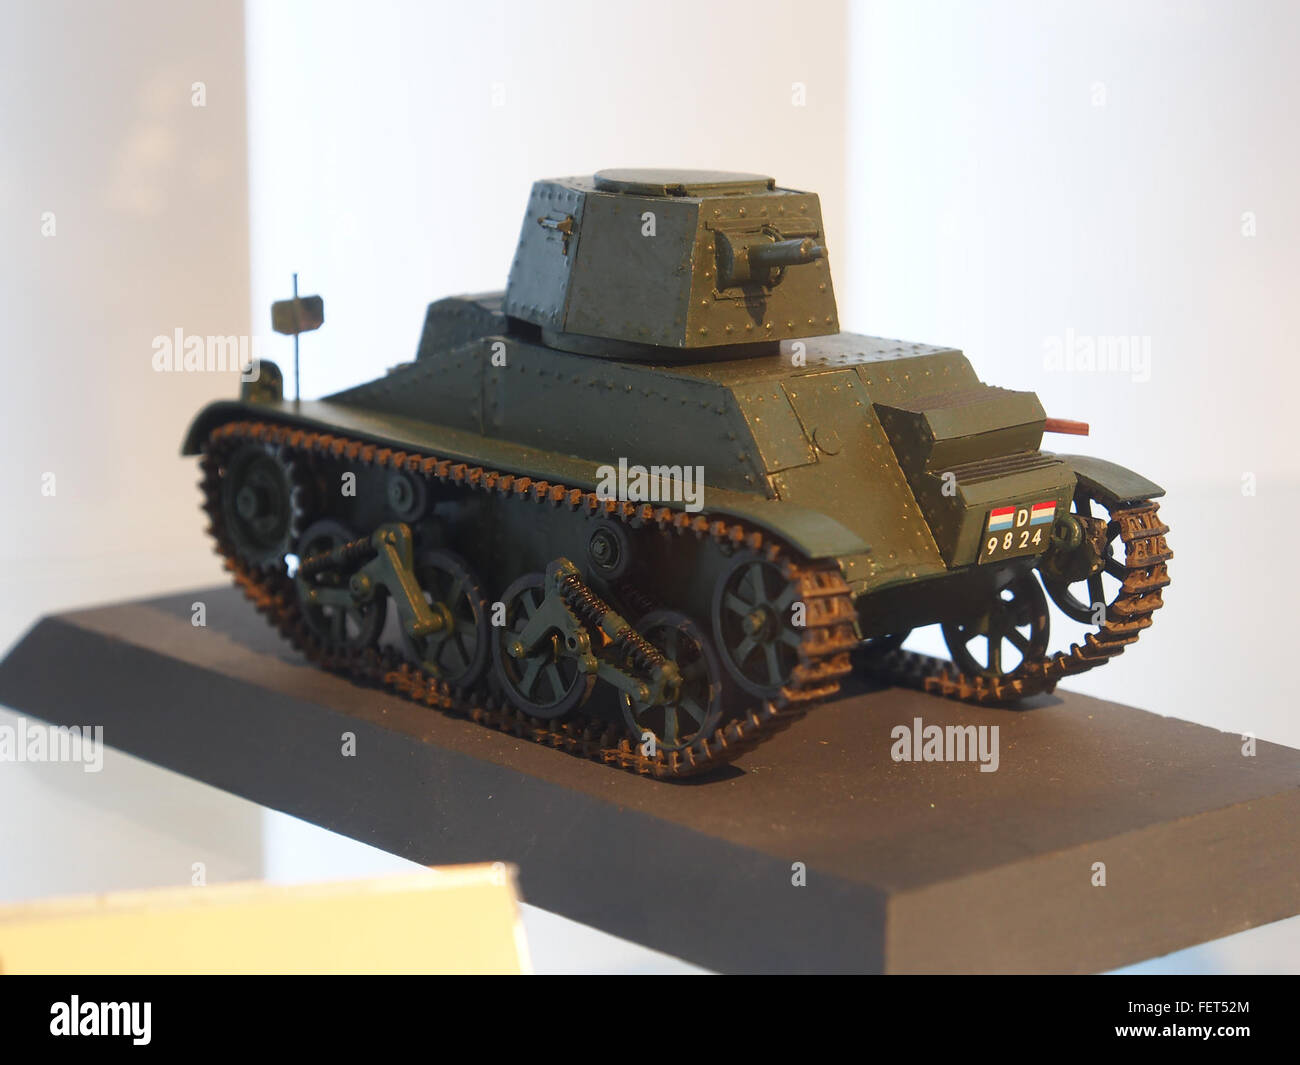 Model at the Dutch Cavalry Museum, Bernhardkazerne pic2 - Stock Image